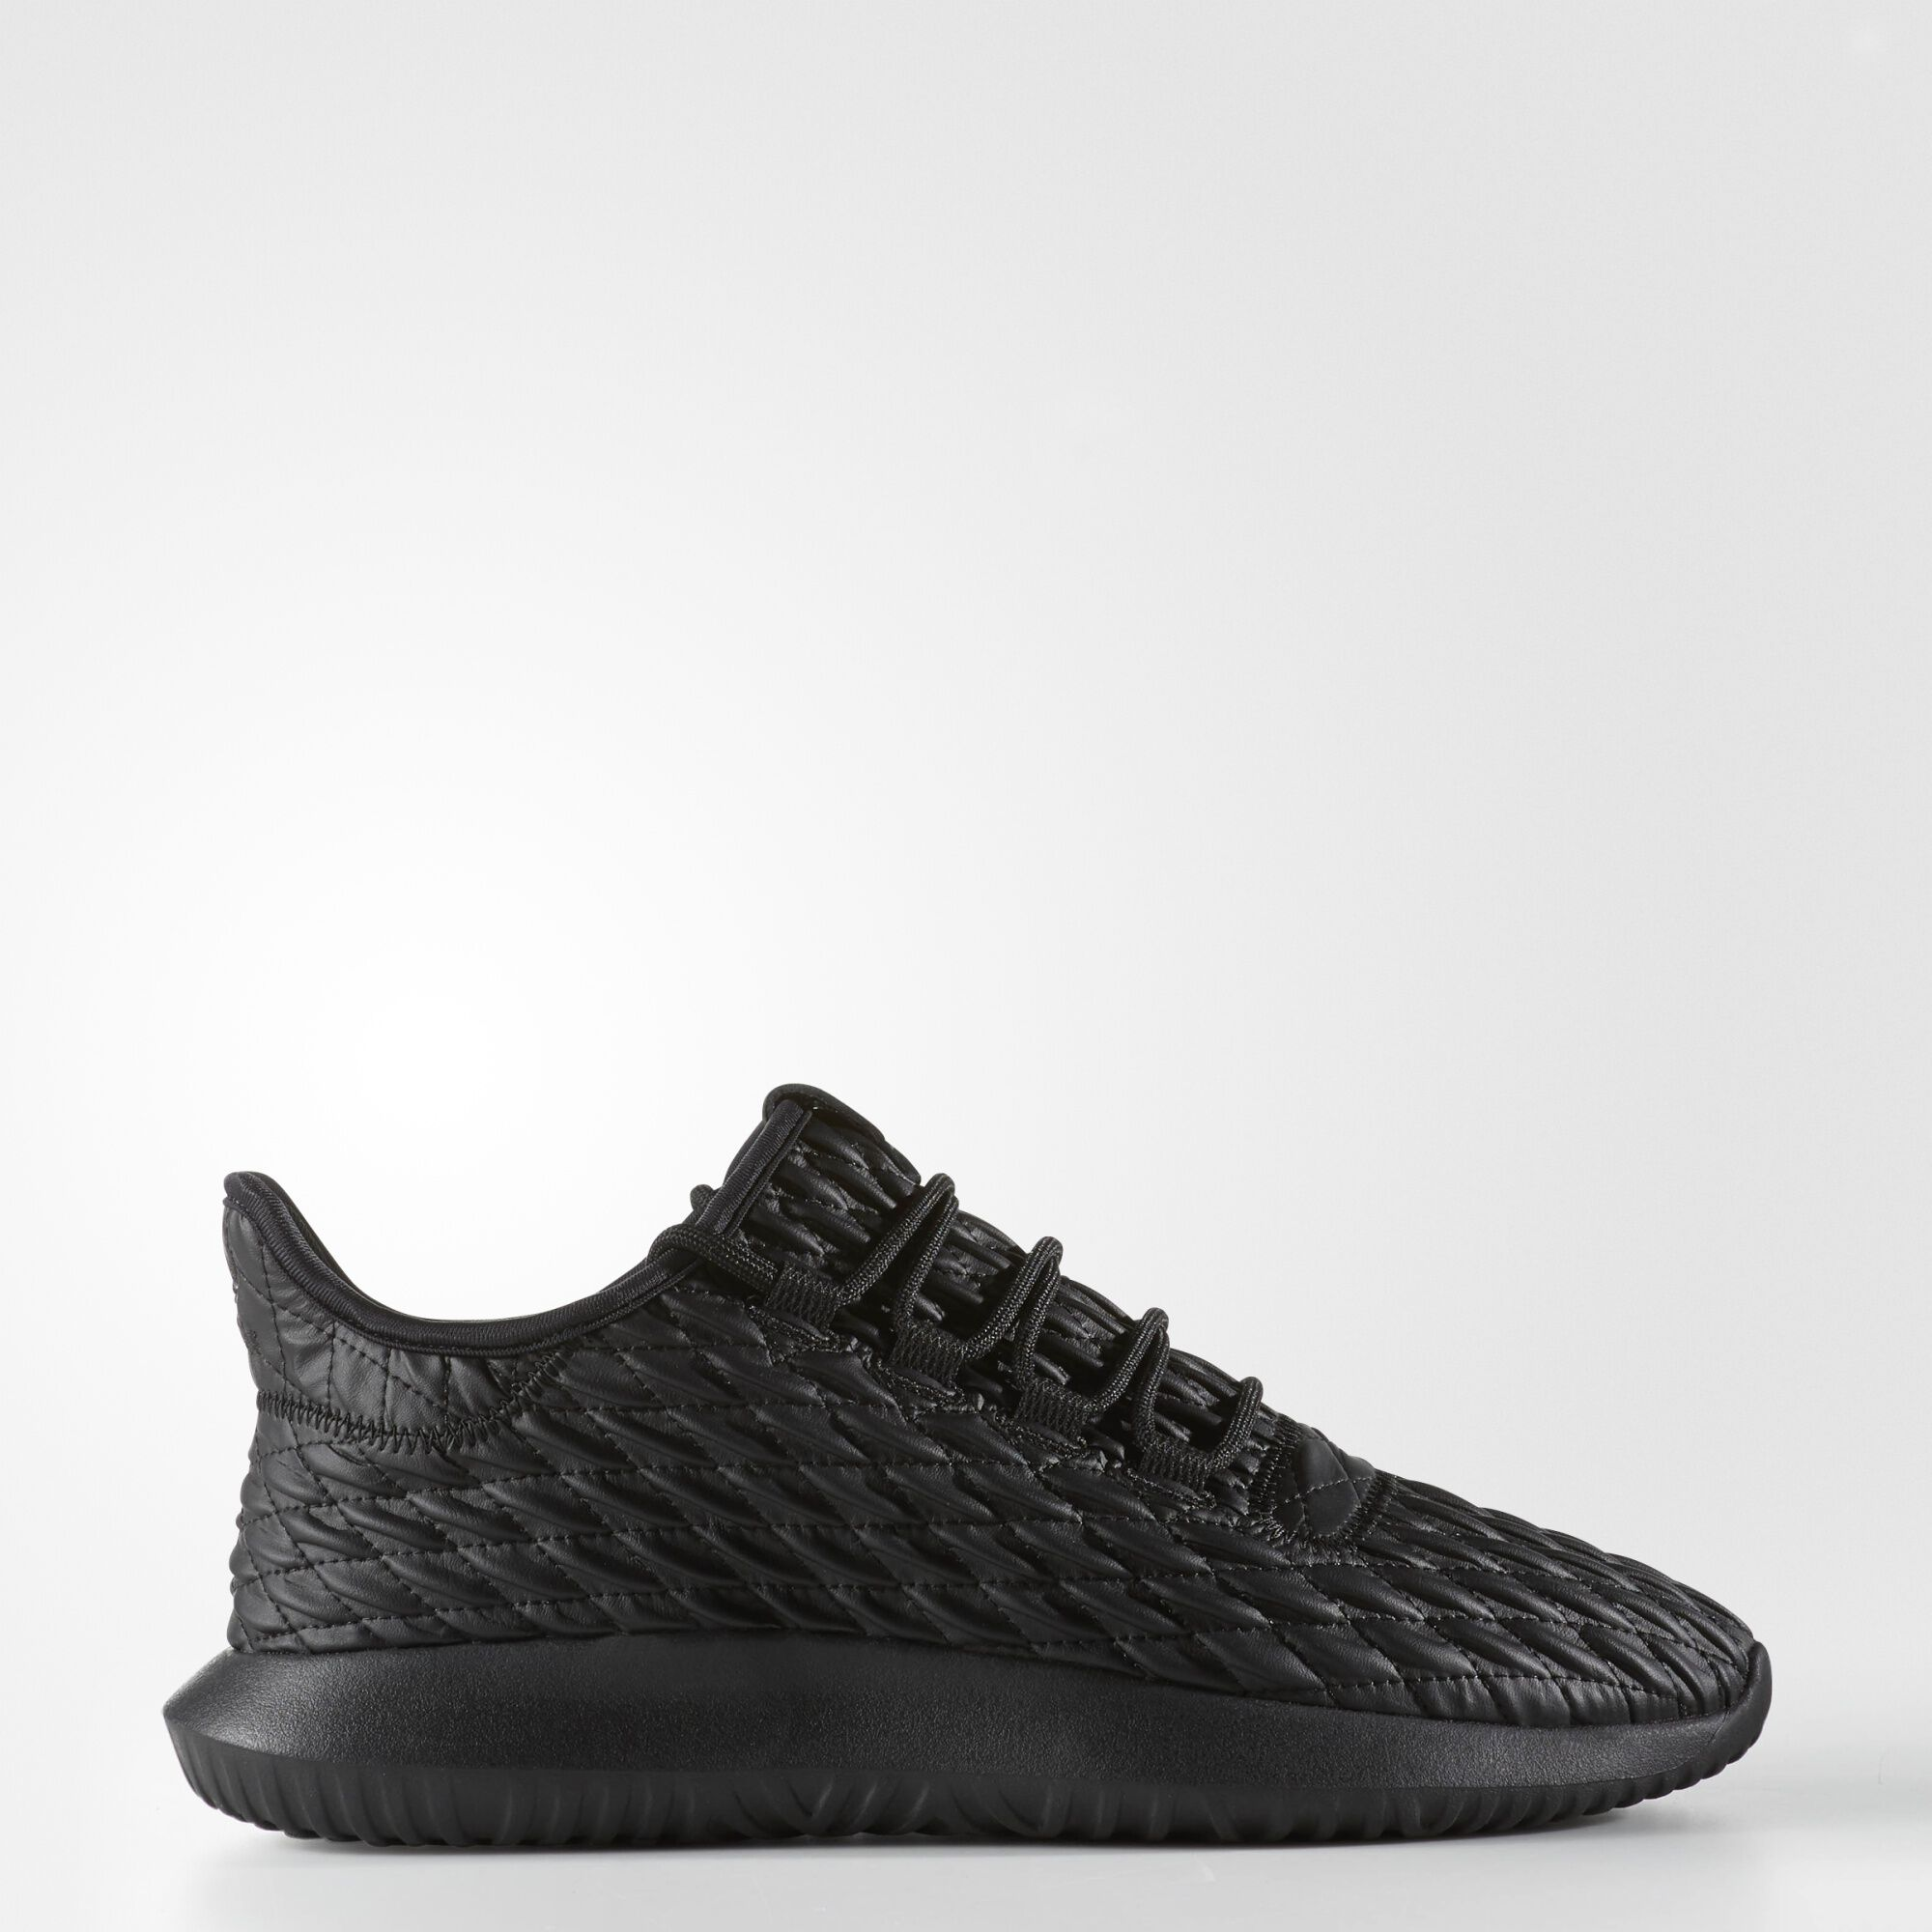 Adidas Rita Ora Tubular Defiant Shoes Black adidas UK